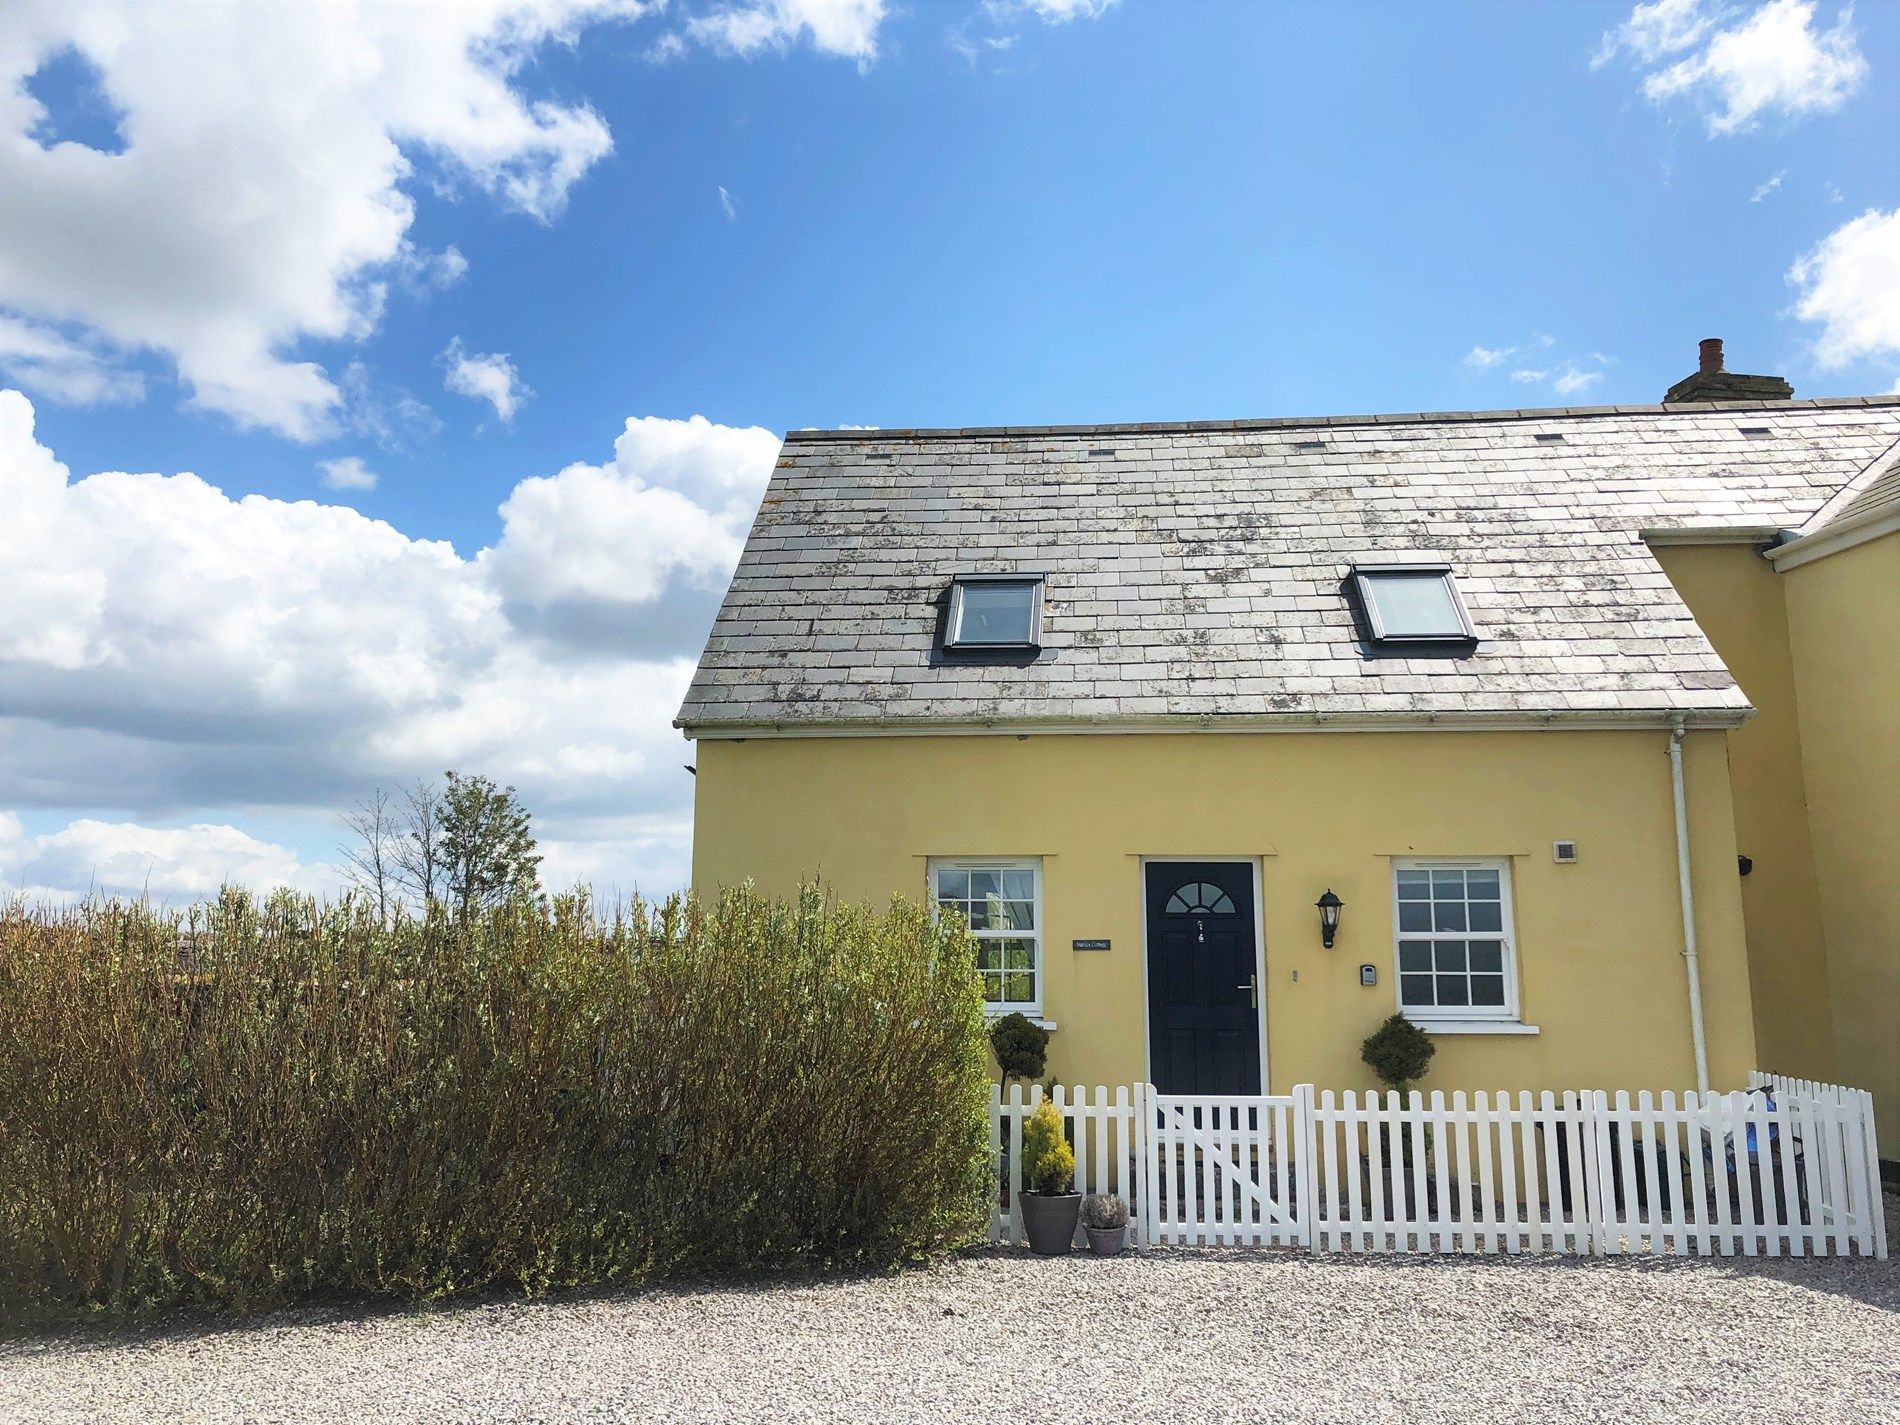 3 Bedroom Cottage in Bridgend, Pembrokeshire and the South